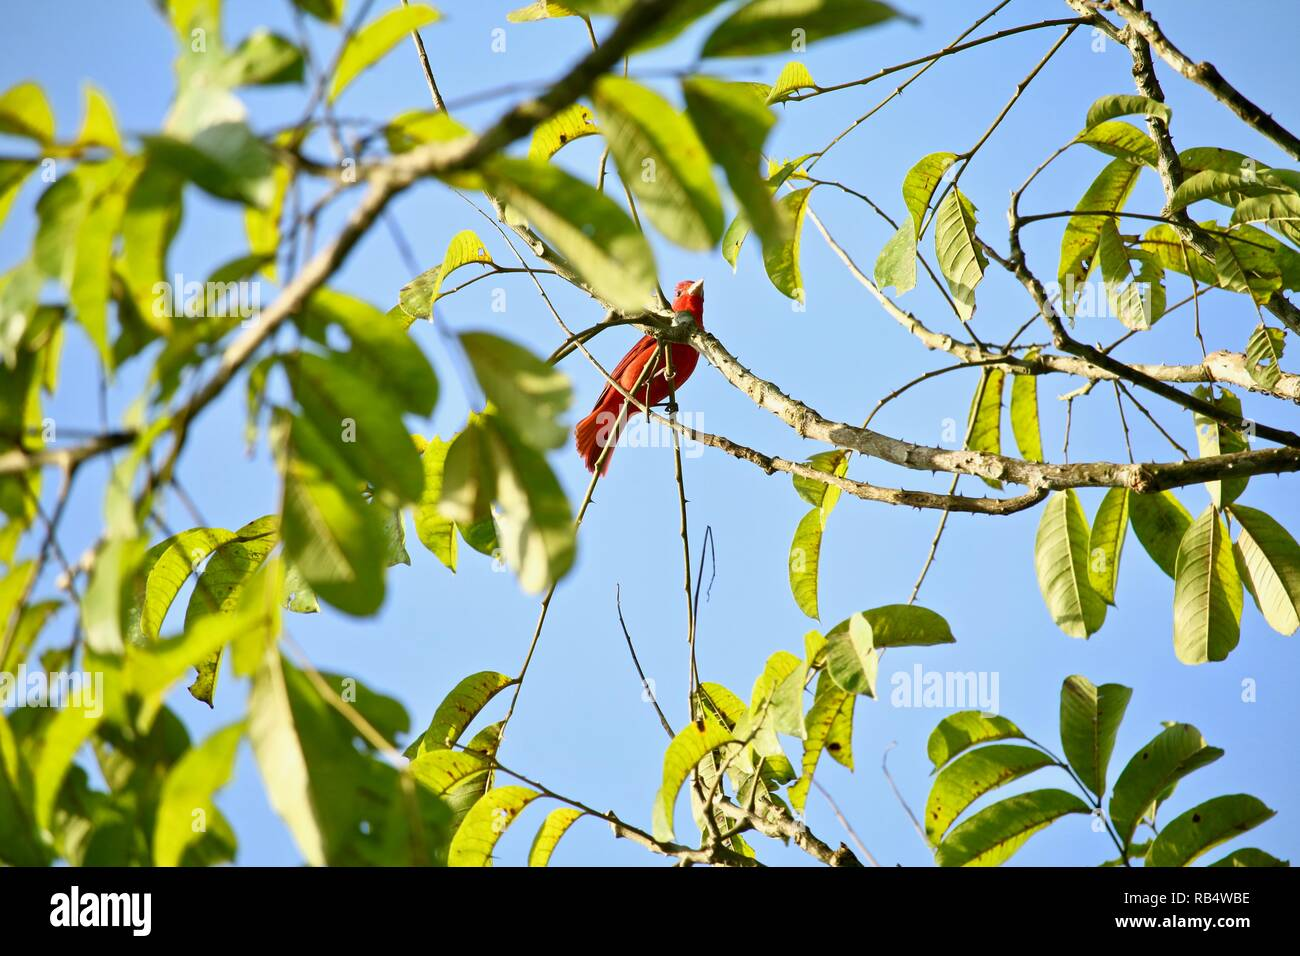 A small red bird amongst light green leaves and a blue sky. - Stock Image